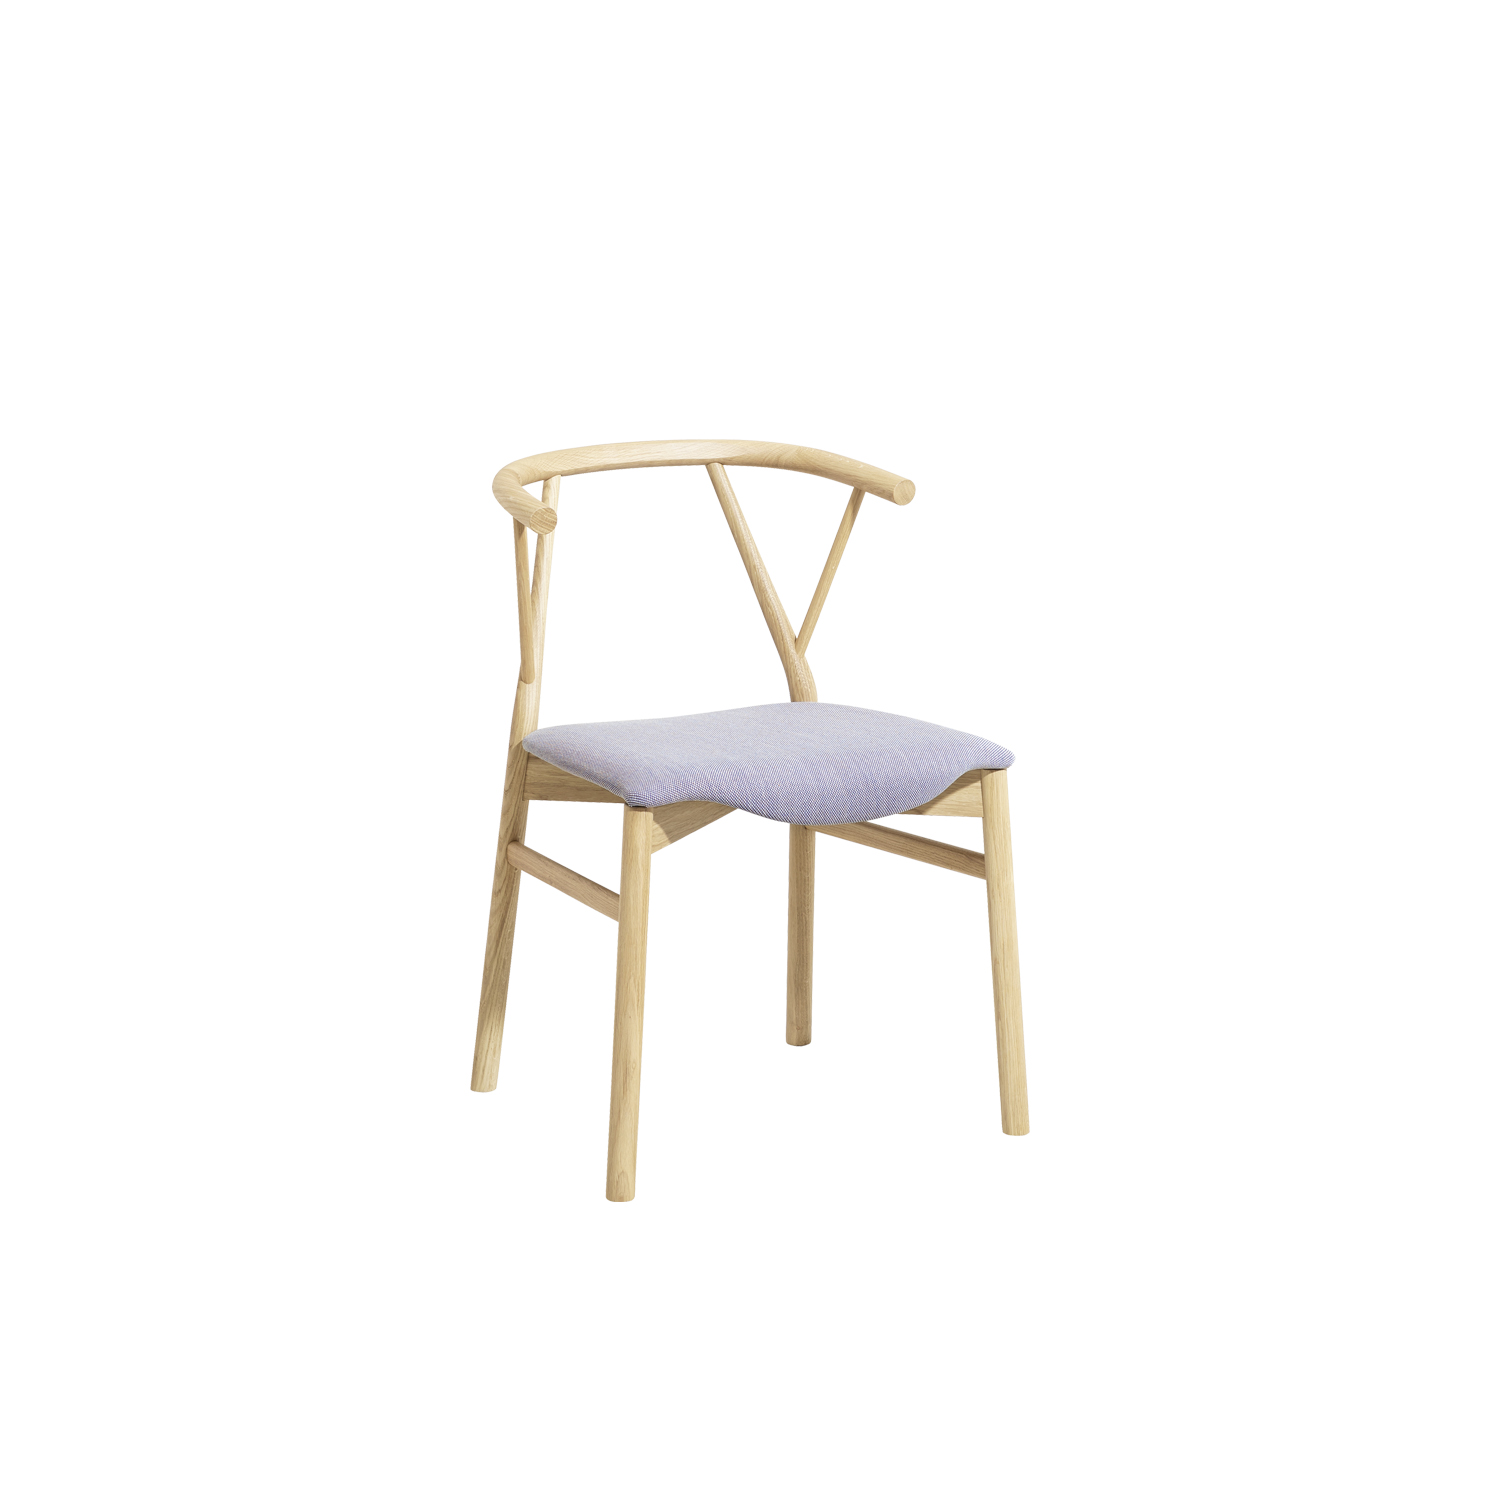 Valerie Chair - The chair is made in bended wood. It represents the essence of the sitting archetype, due to the used materials and to the form. Doesn't want to impress, just to perform in the better way the primary function: to accommodate. The chair develops the contrast between the essential structure and the wooden seat: the first devoted to the support and the second, to the comfort. The chair has a solid wood structure, available in the listed wooden finishes, stained aniline or lacquered. Structure available with or without seat-cushion, upholstered in the listed fabrics.